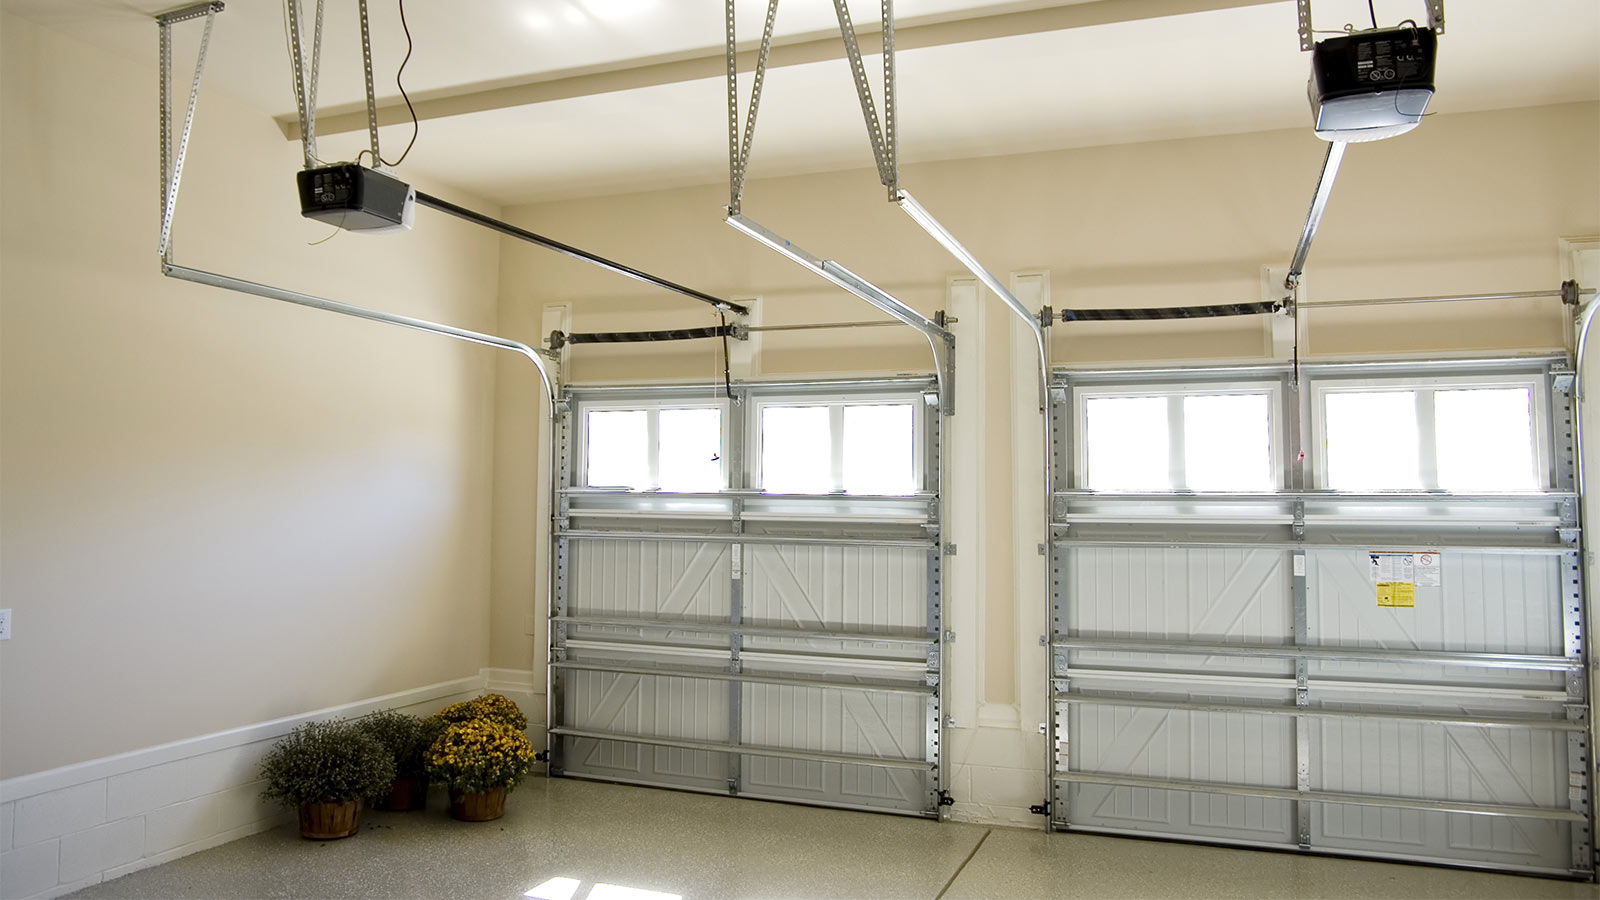 Sectional Garage Doors from Electric Gates Rayleigh suppliers.